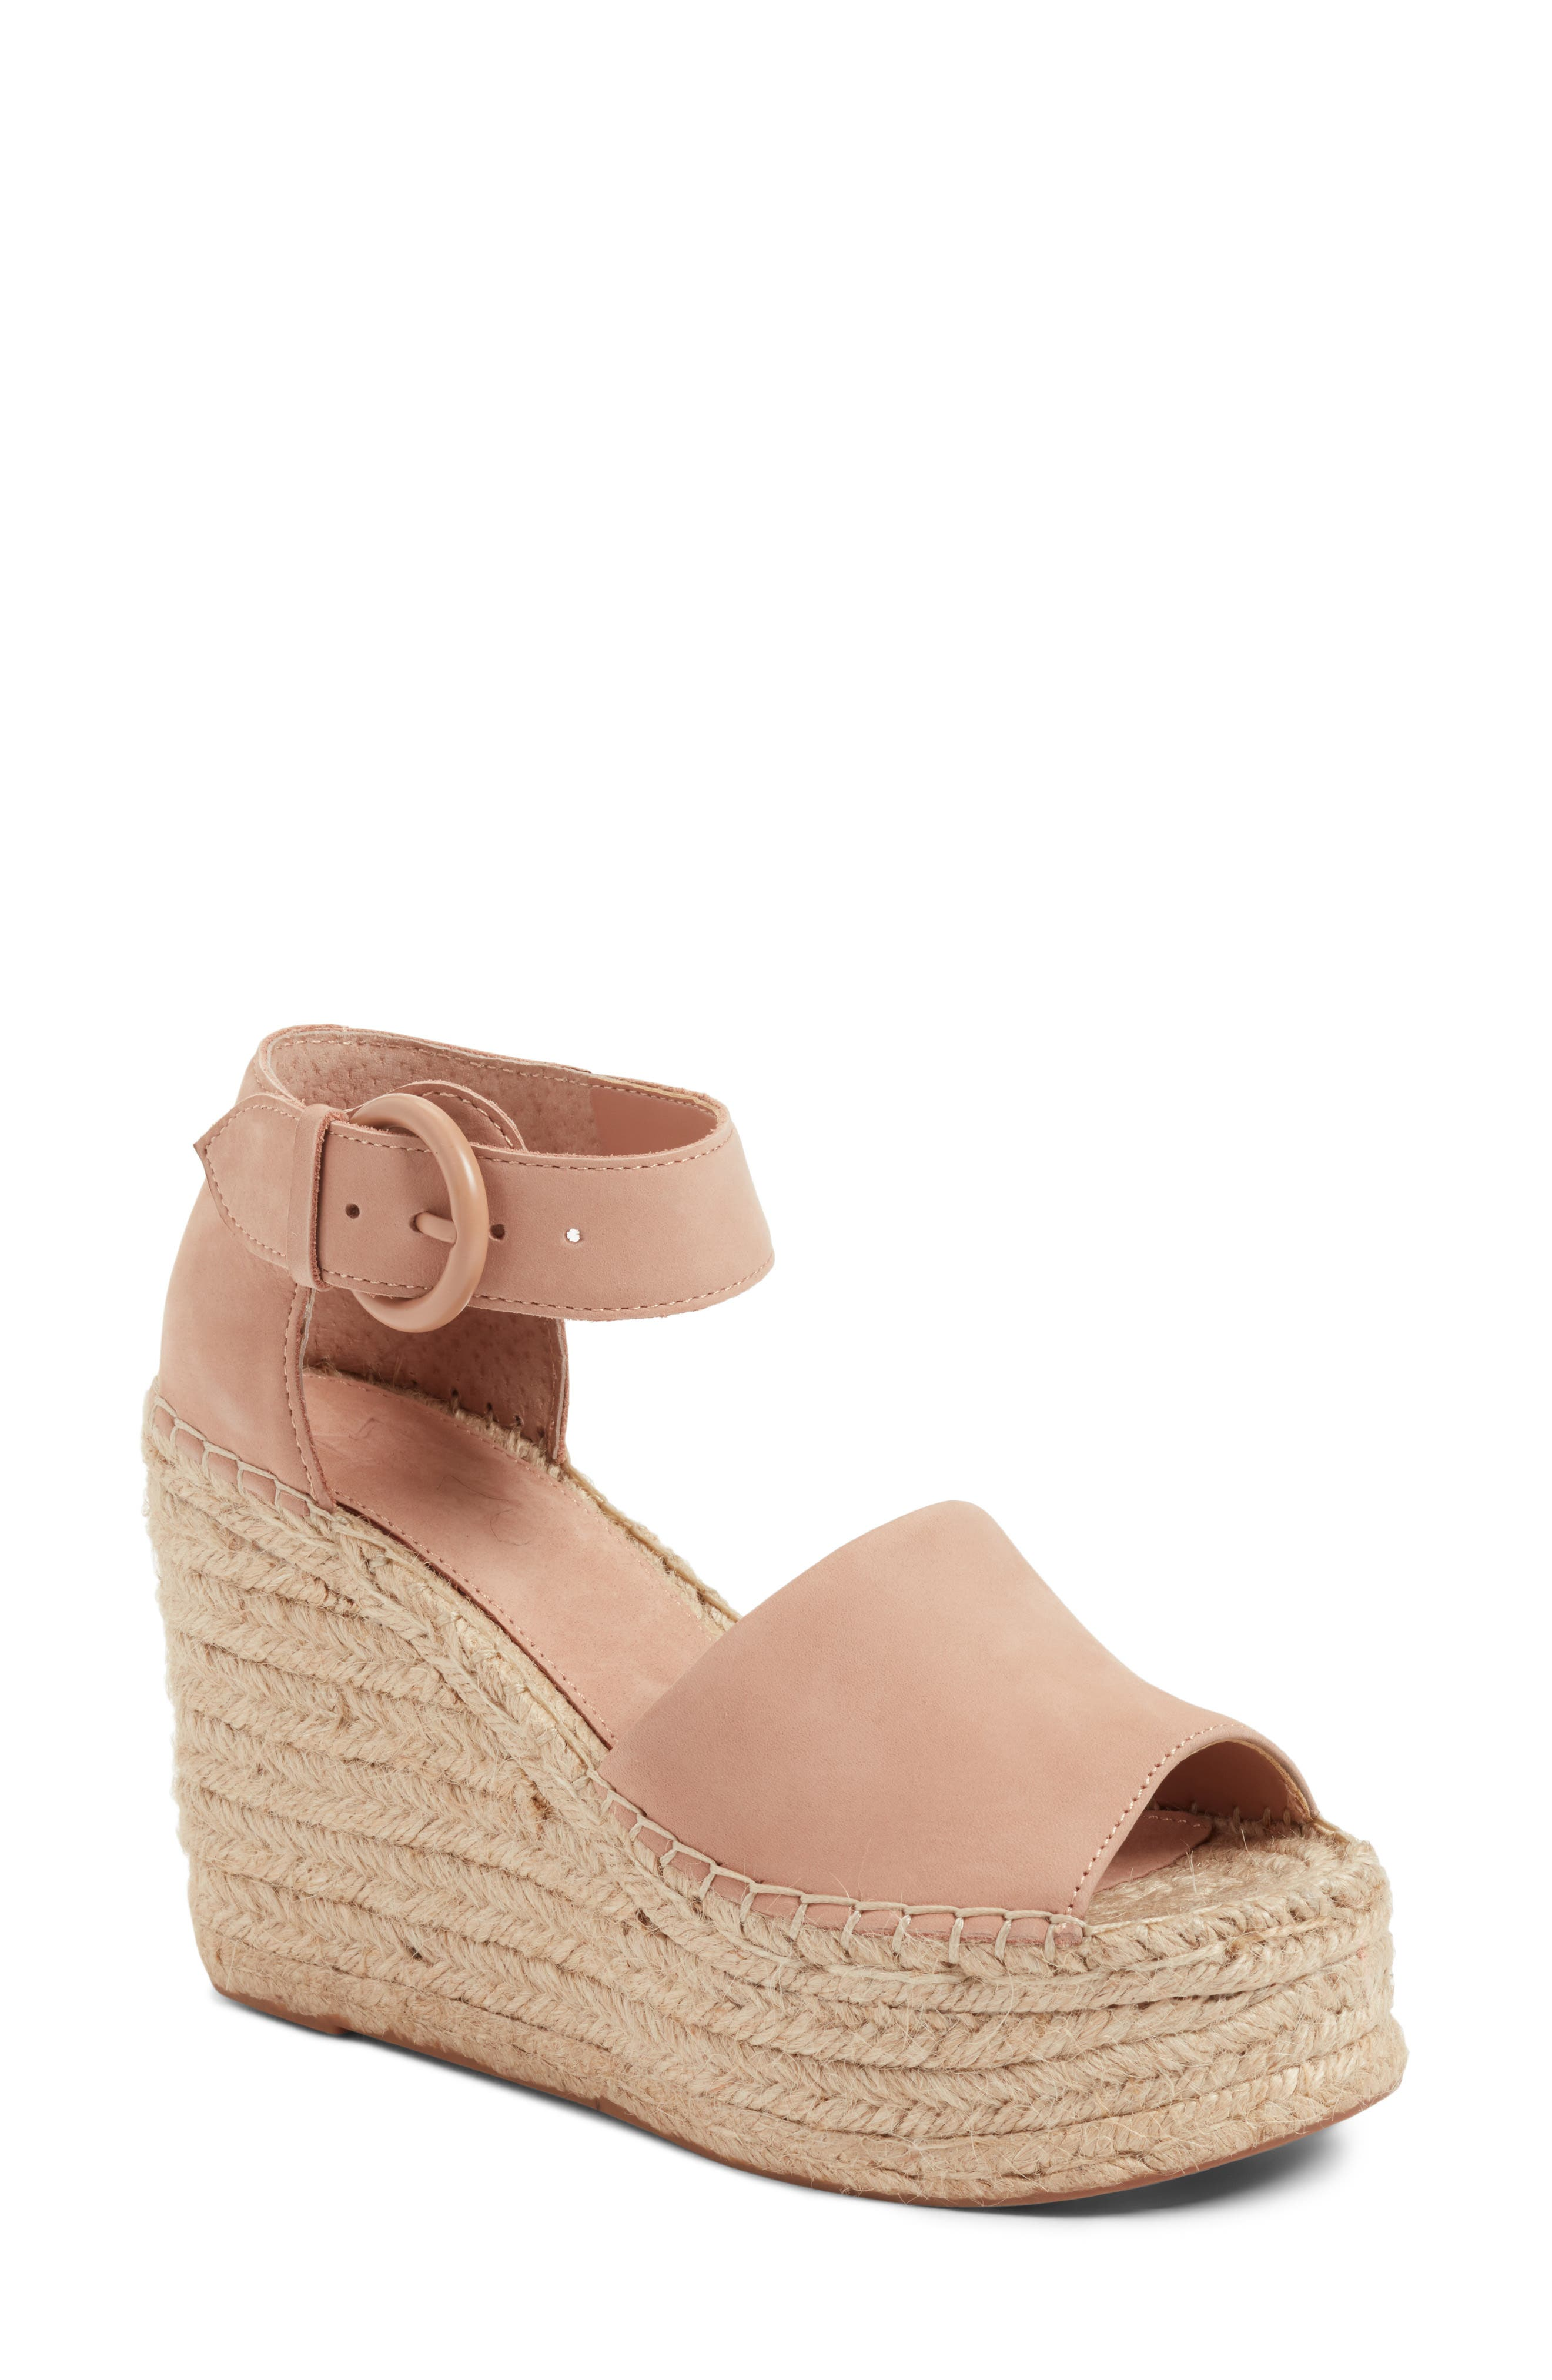 Pink Heels & High-Heel Shoes for Women | Nordstrom